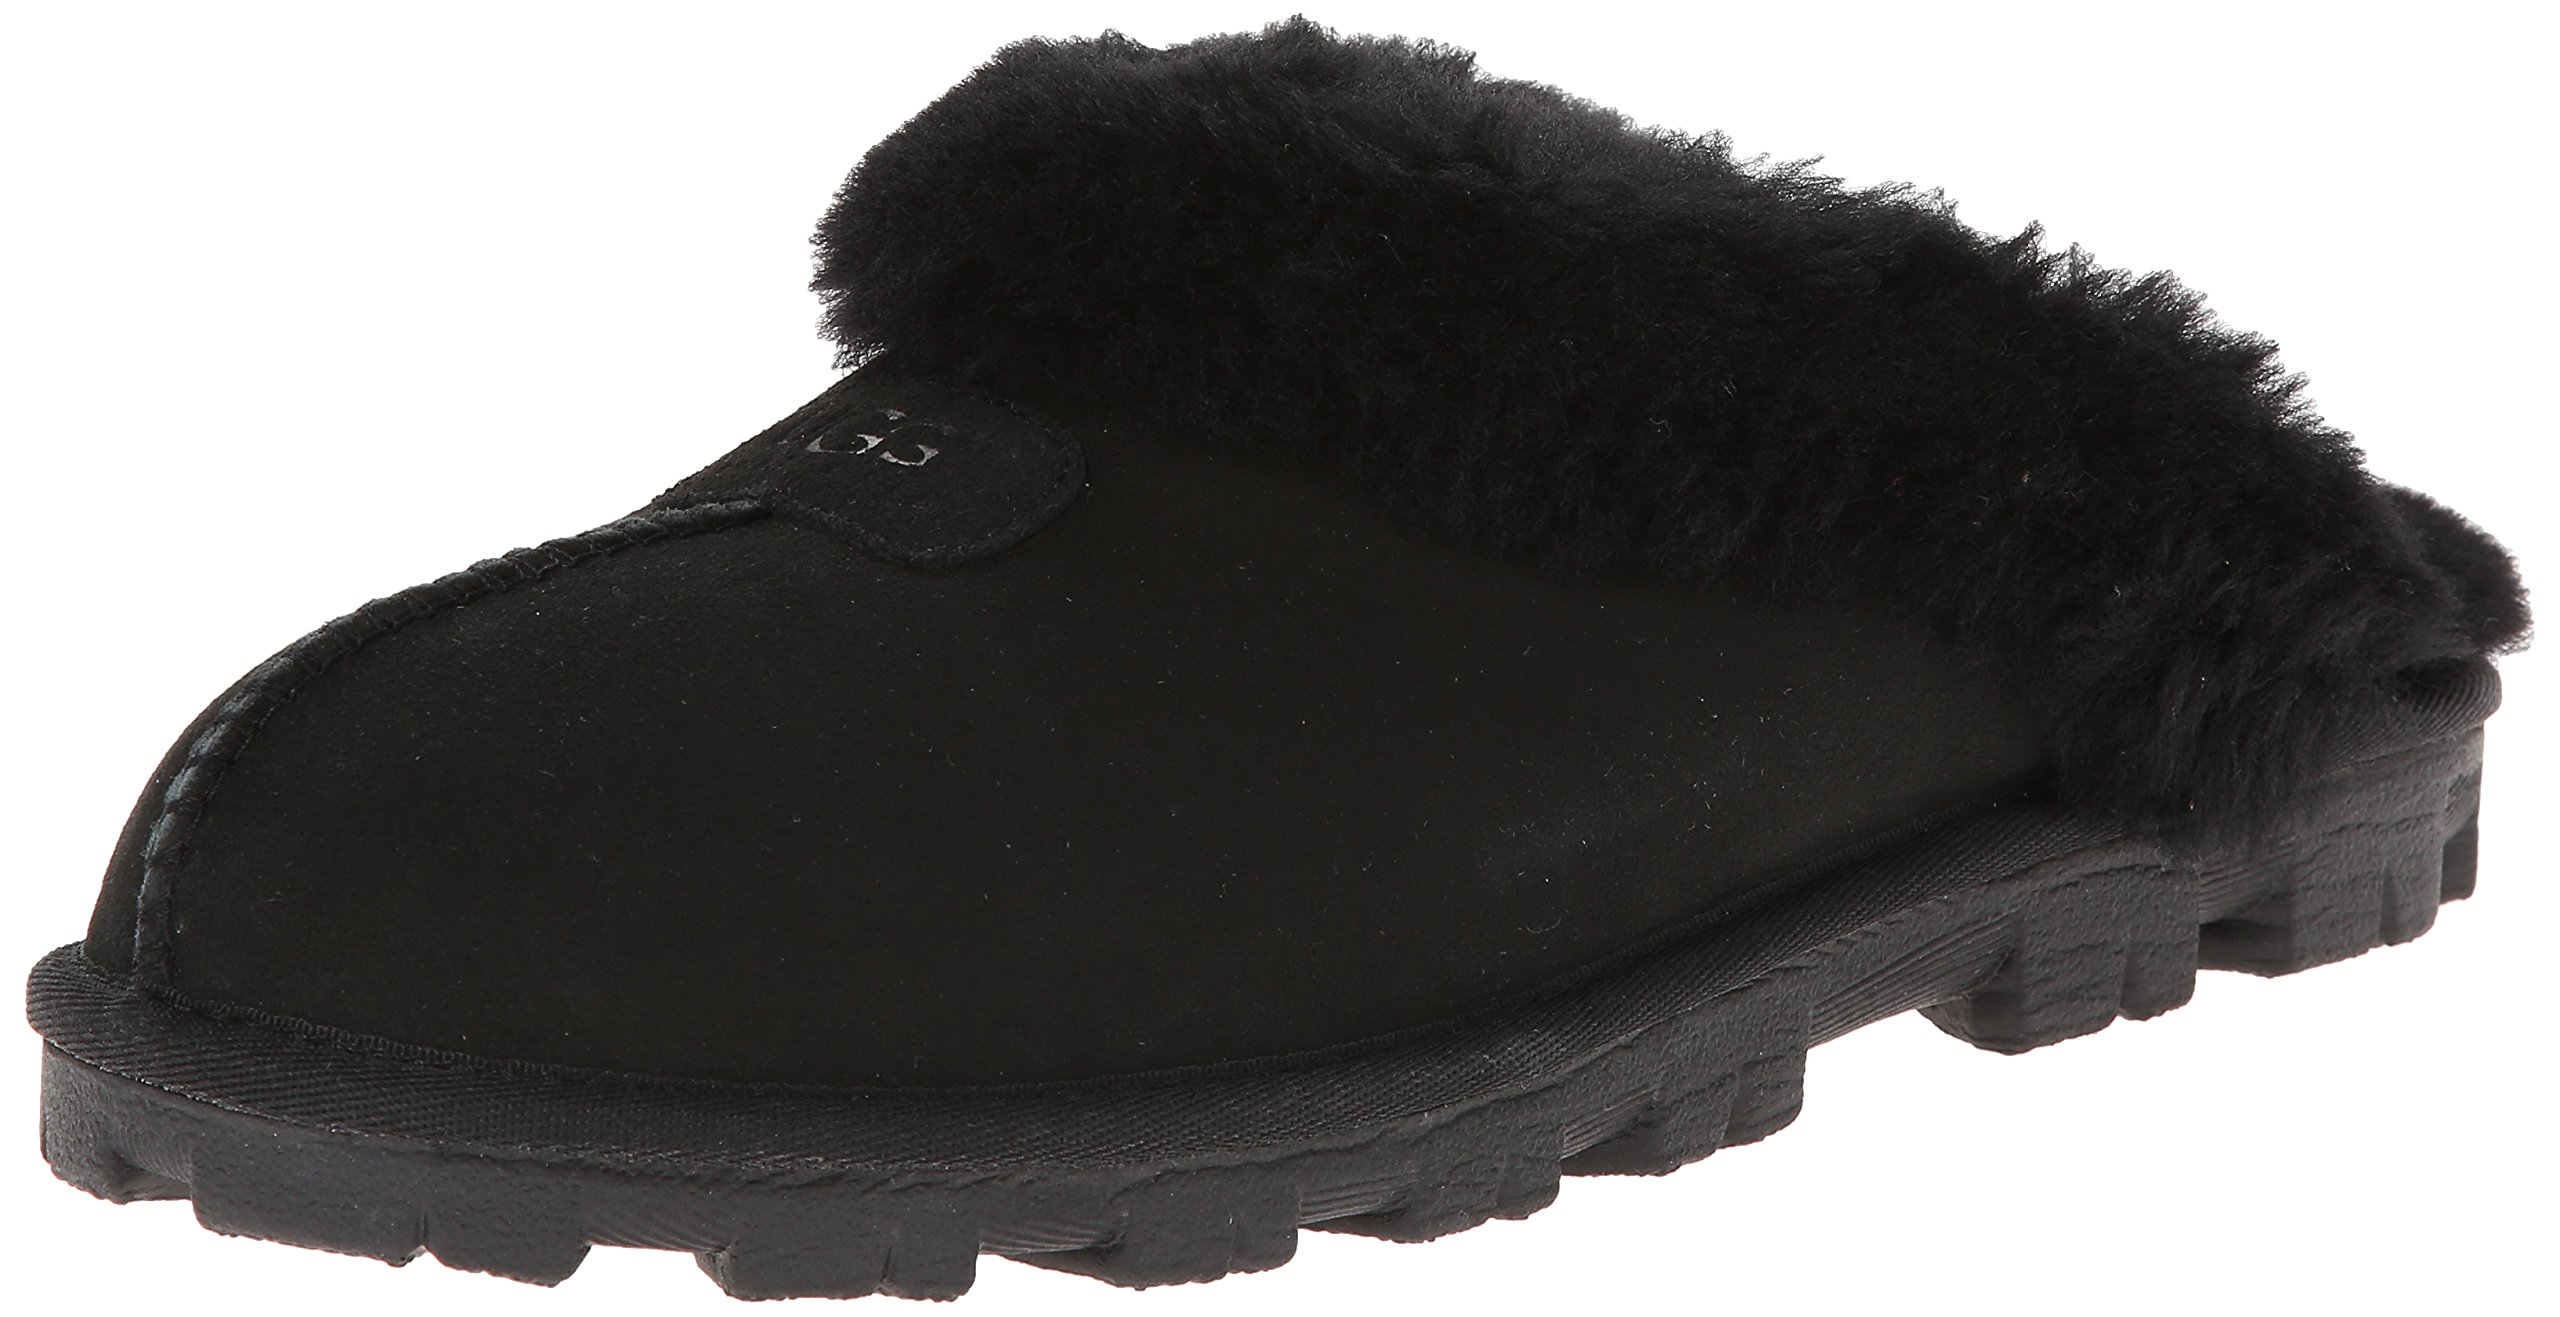 UGG Women's Coquette Slipper, Black, 11 US/11 B US